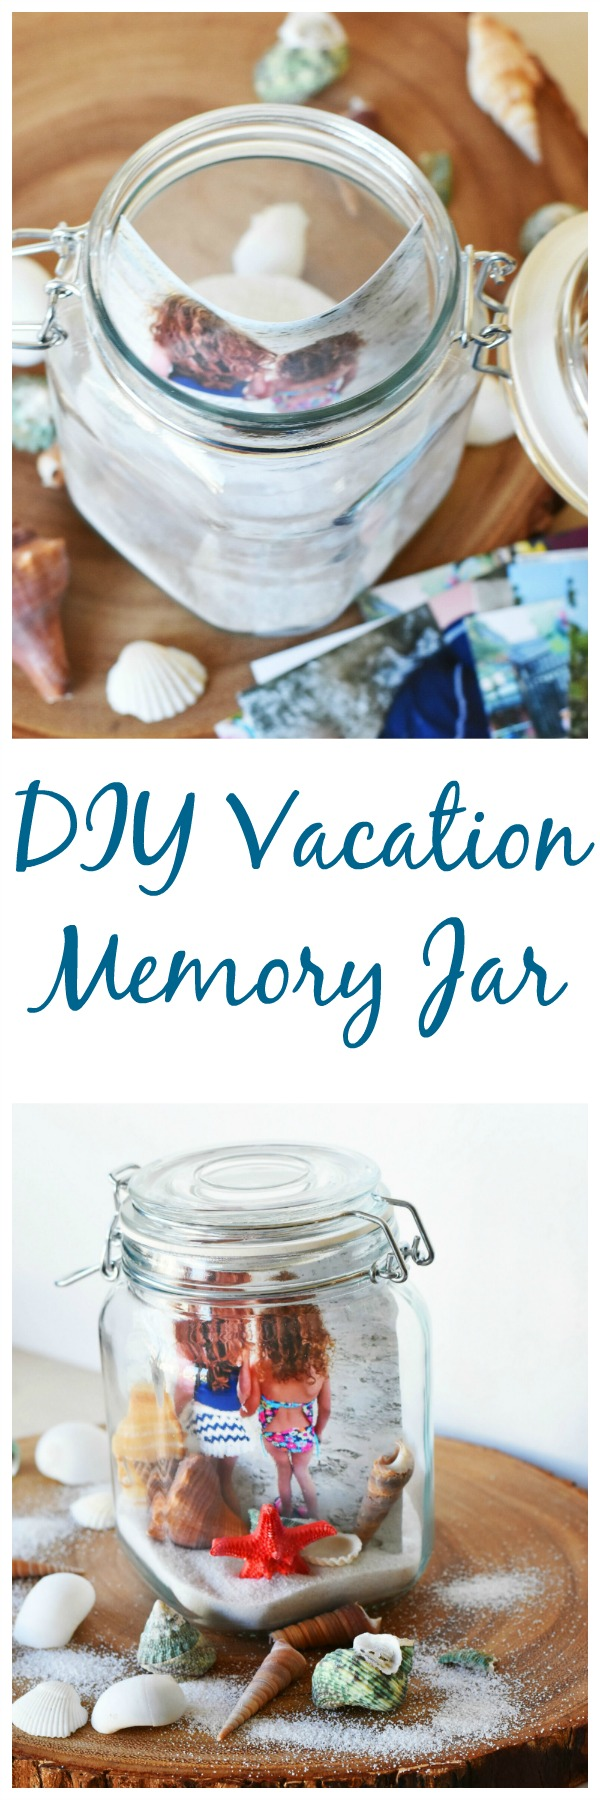 vacation-memory-jar